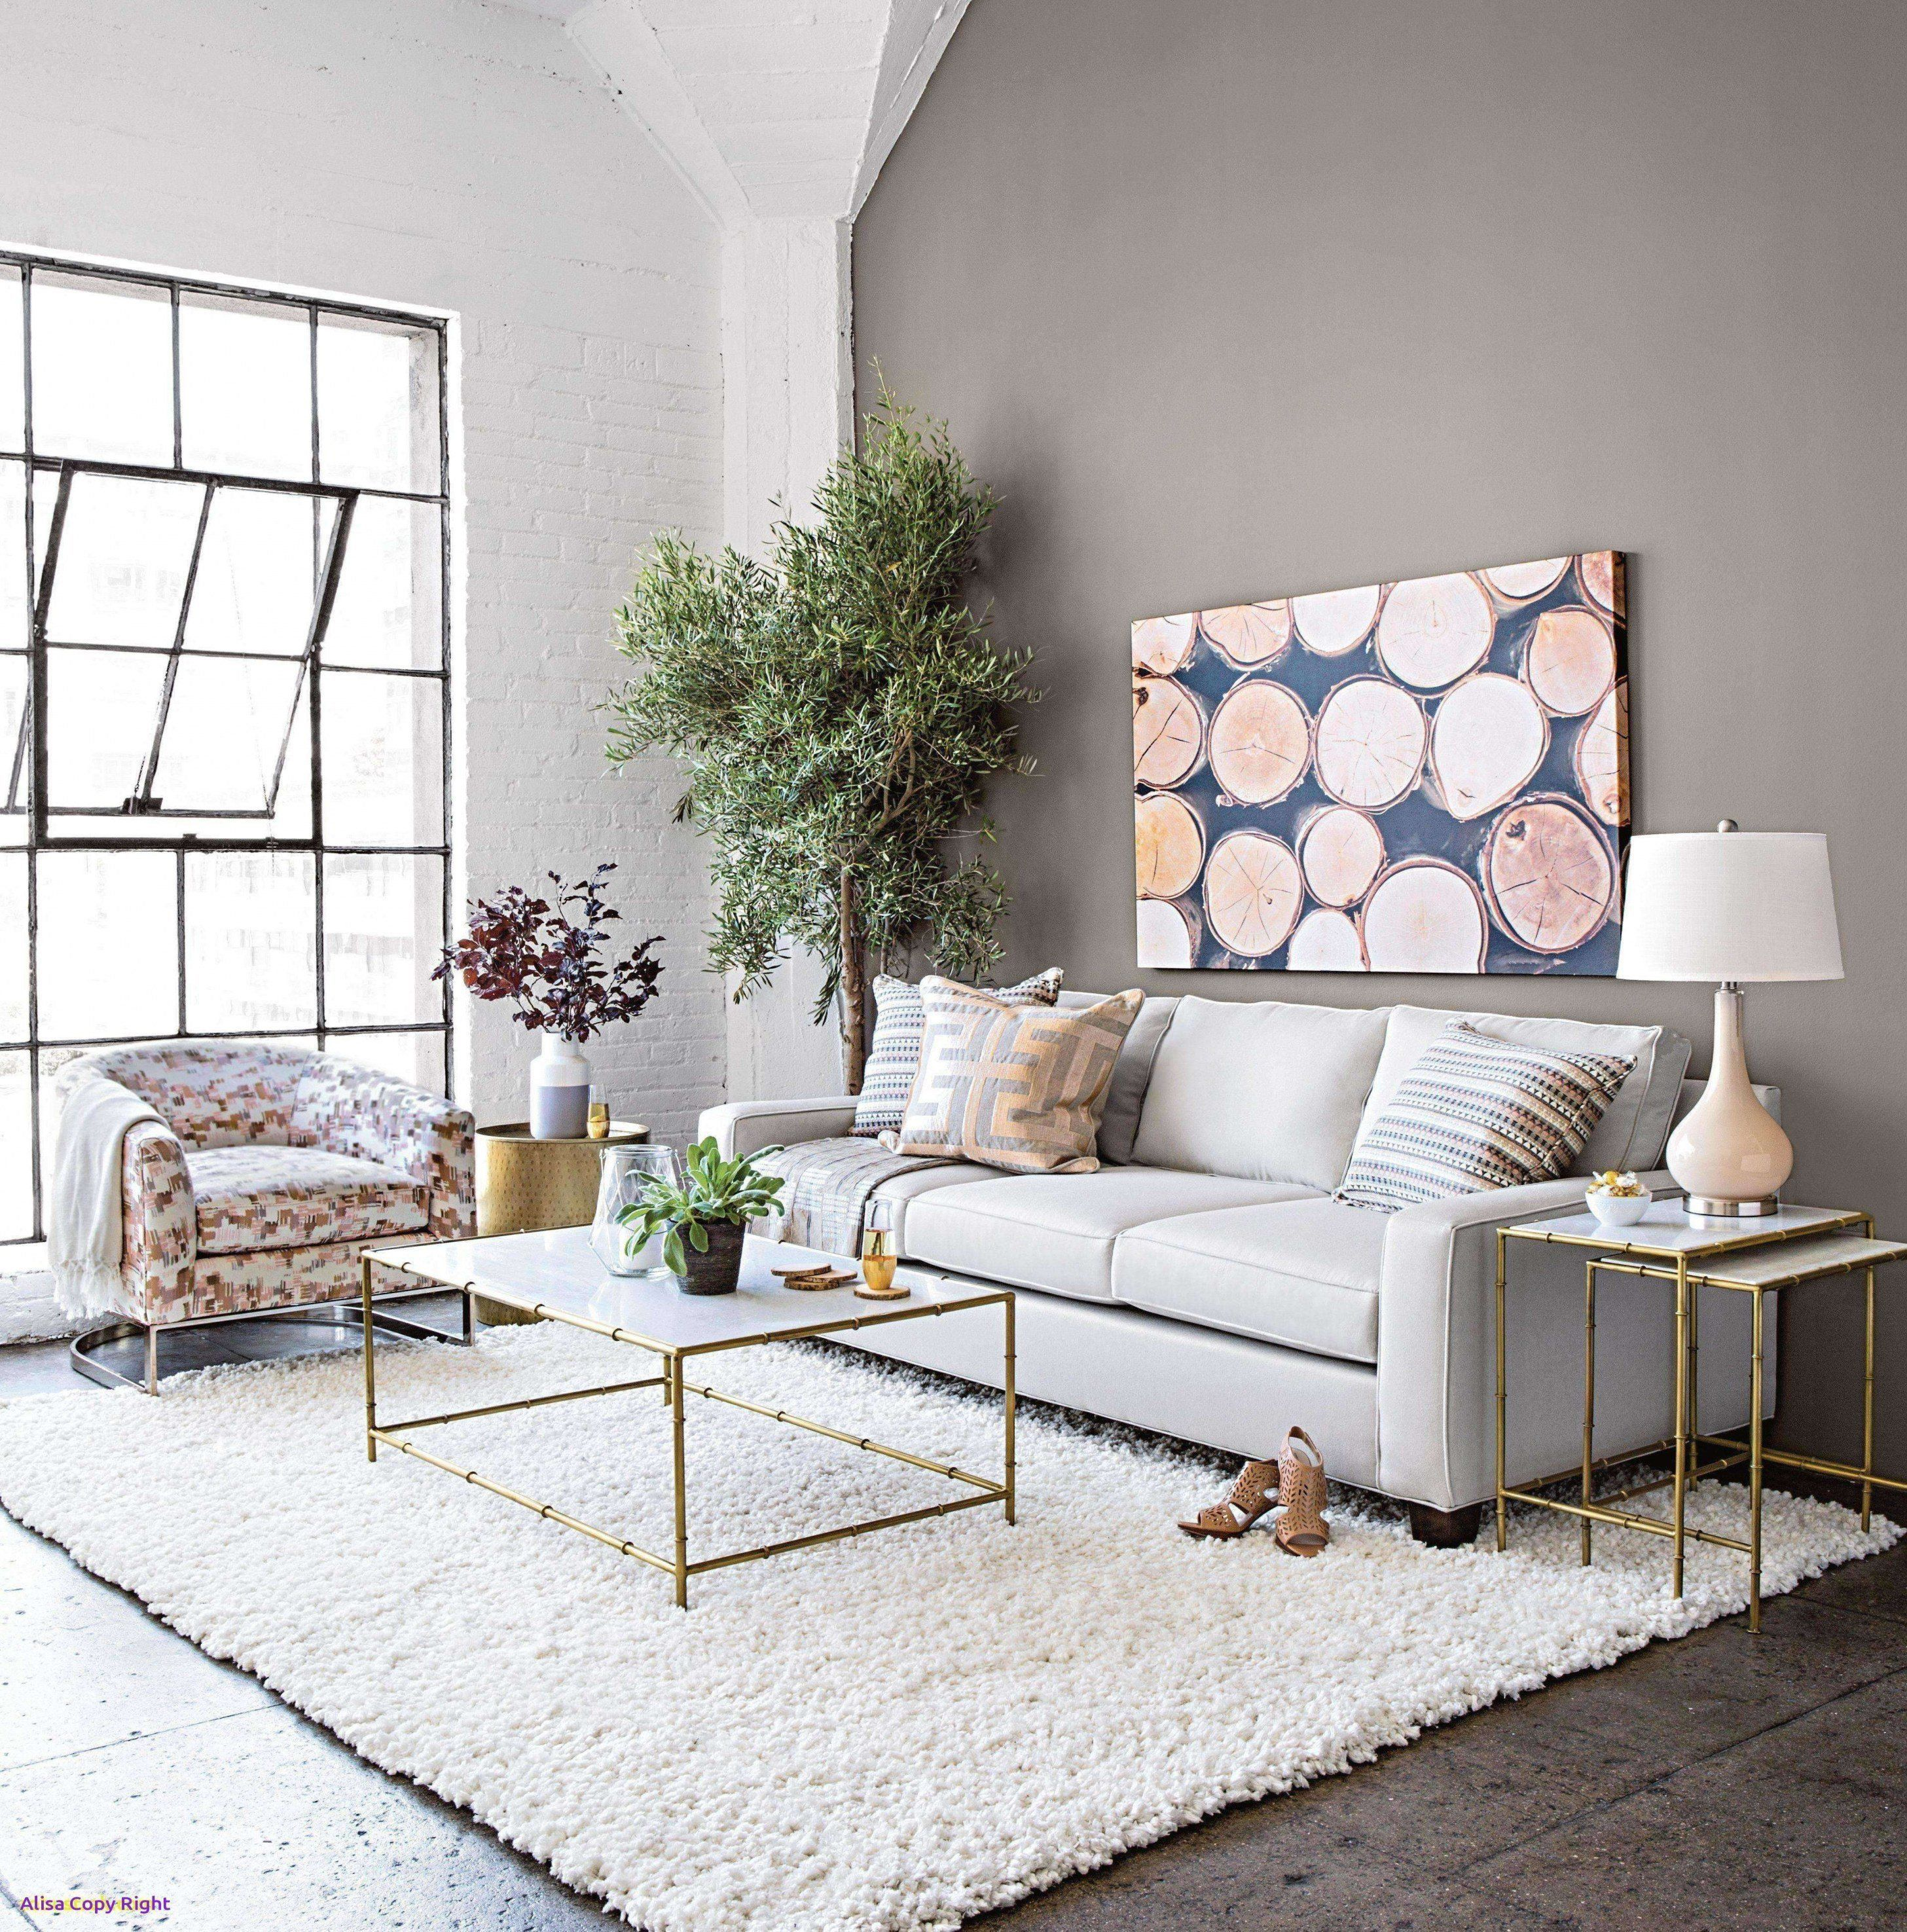 14 Stores Like West Elm With Stunning Modern Takes On Home Decor